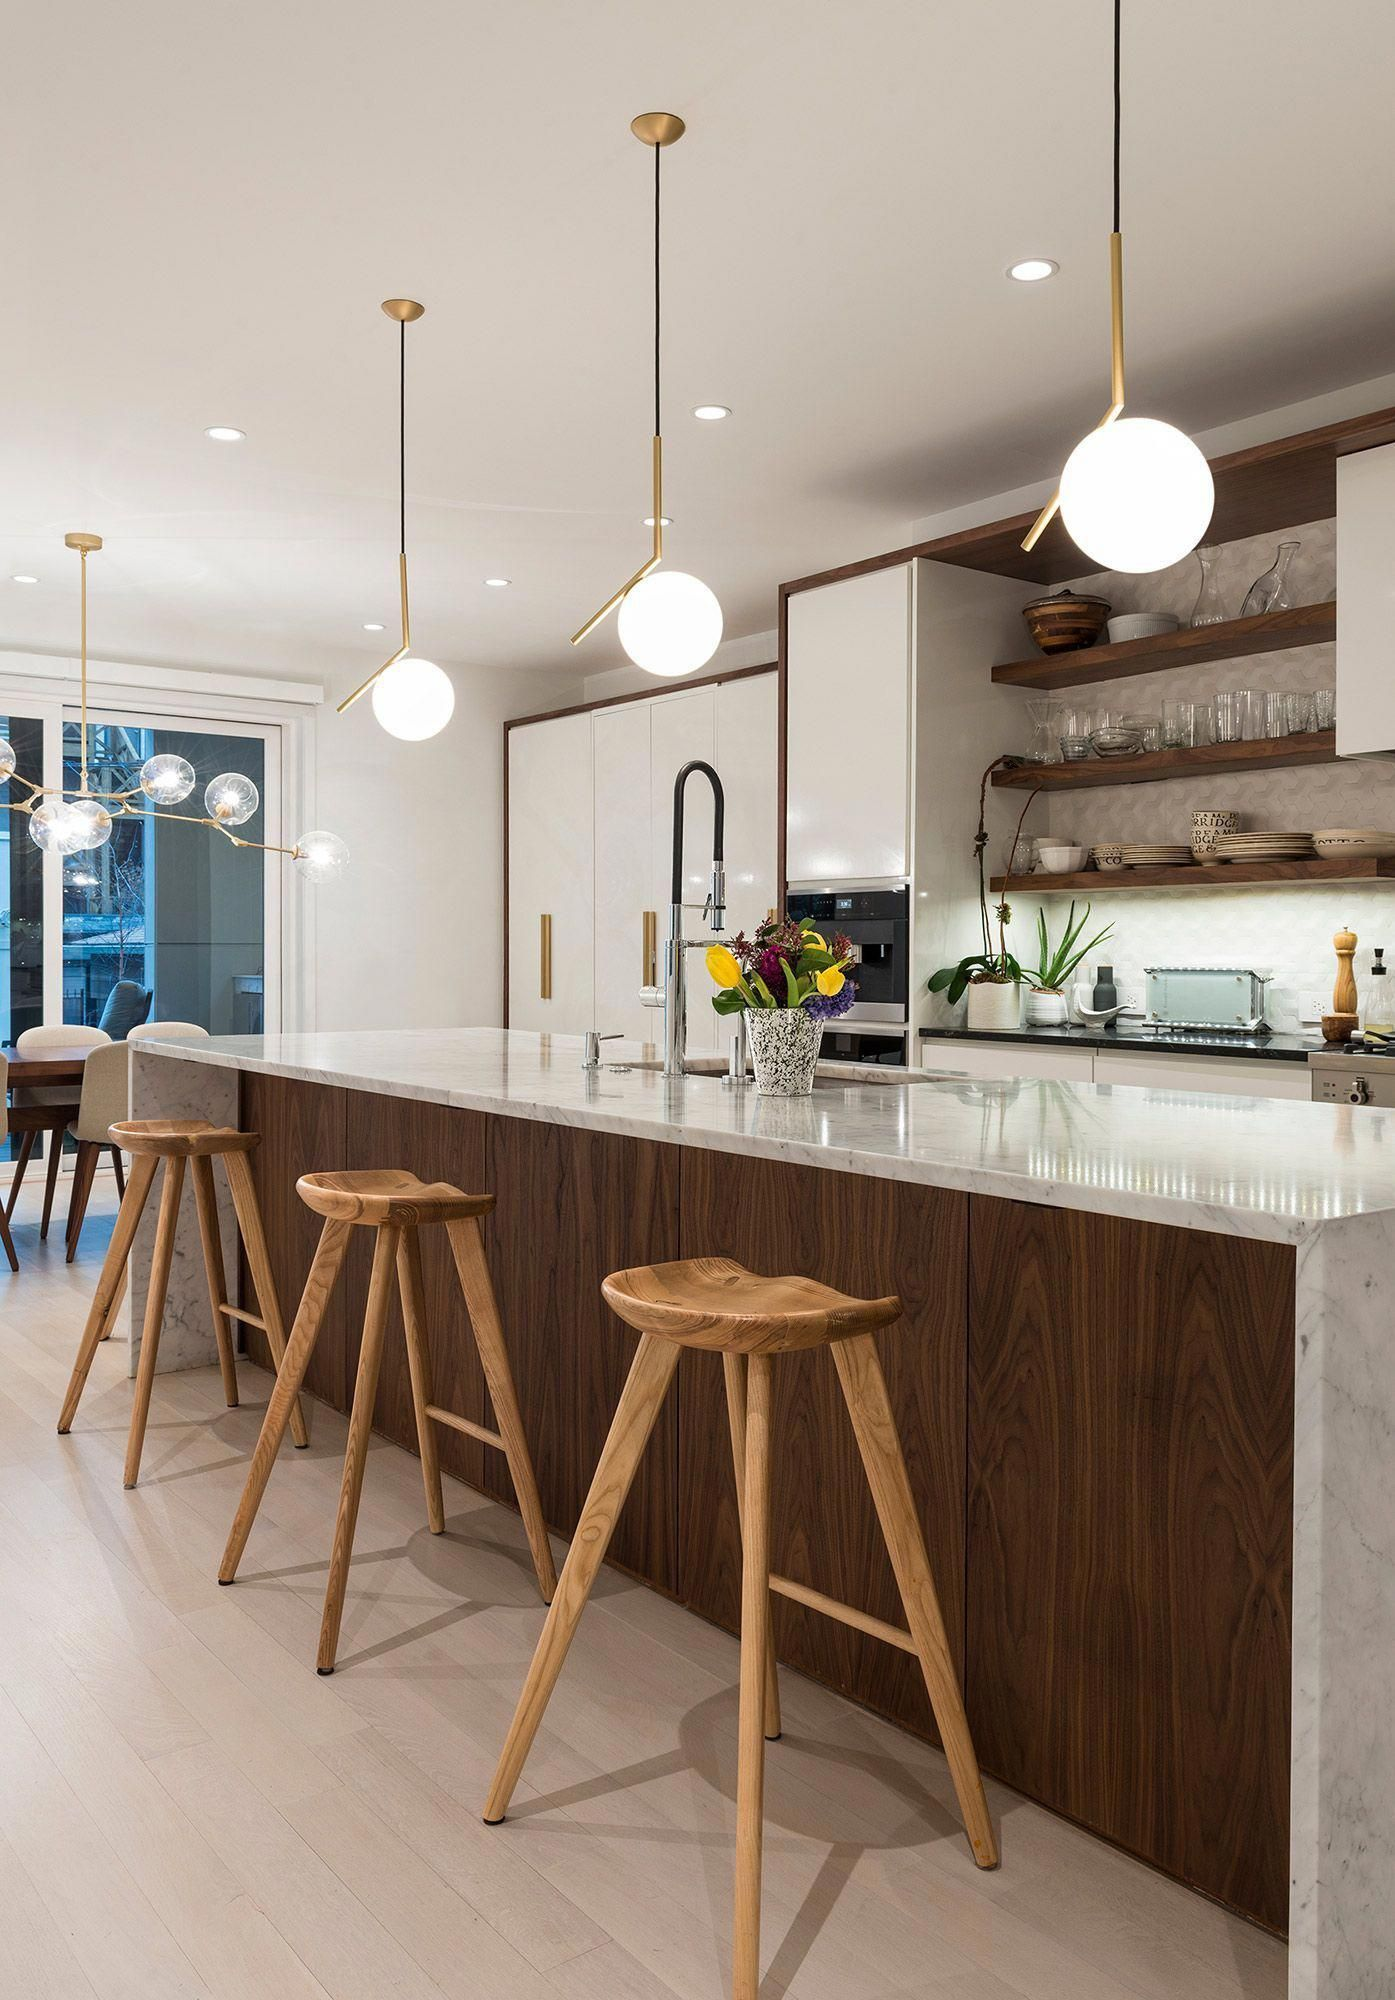 kitchenlighting in 2020 Modern kitchen design, Rustic